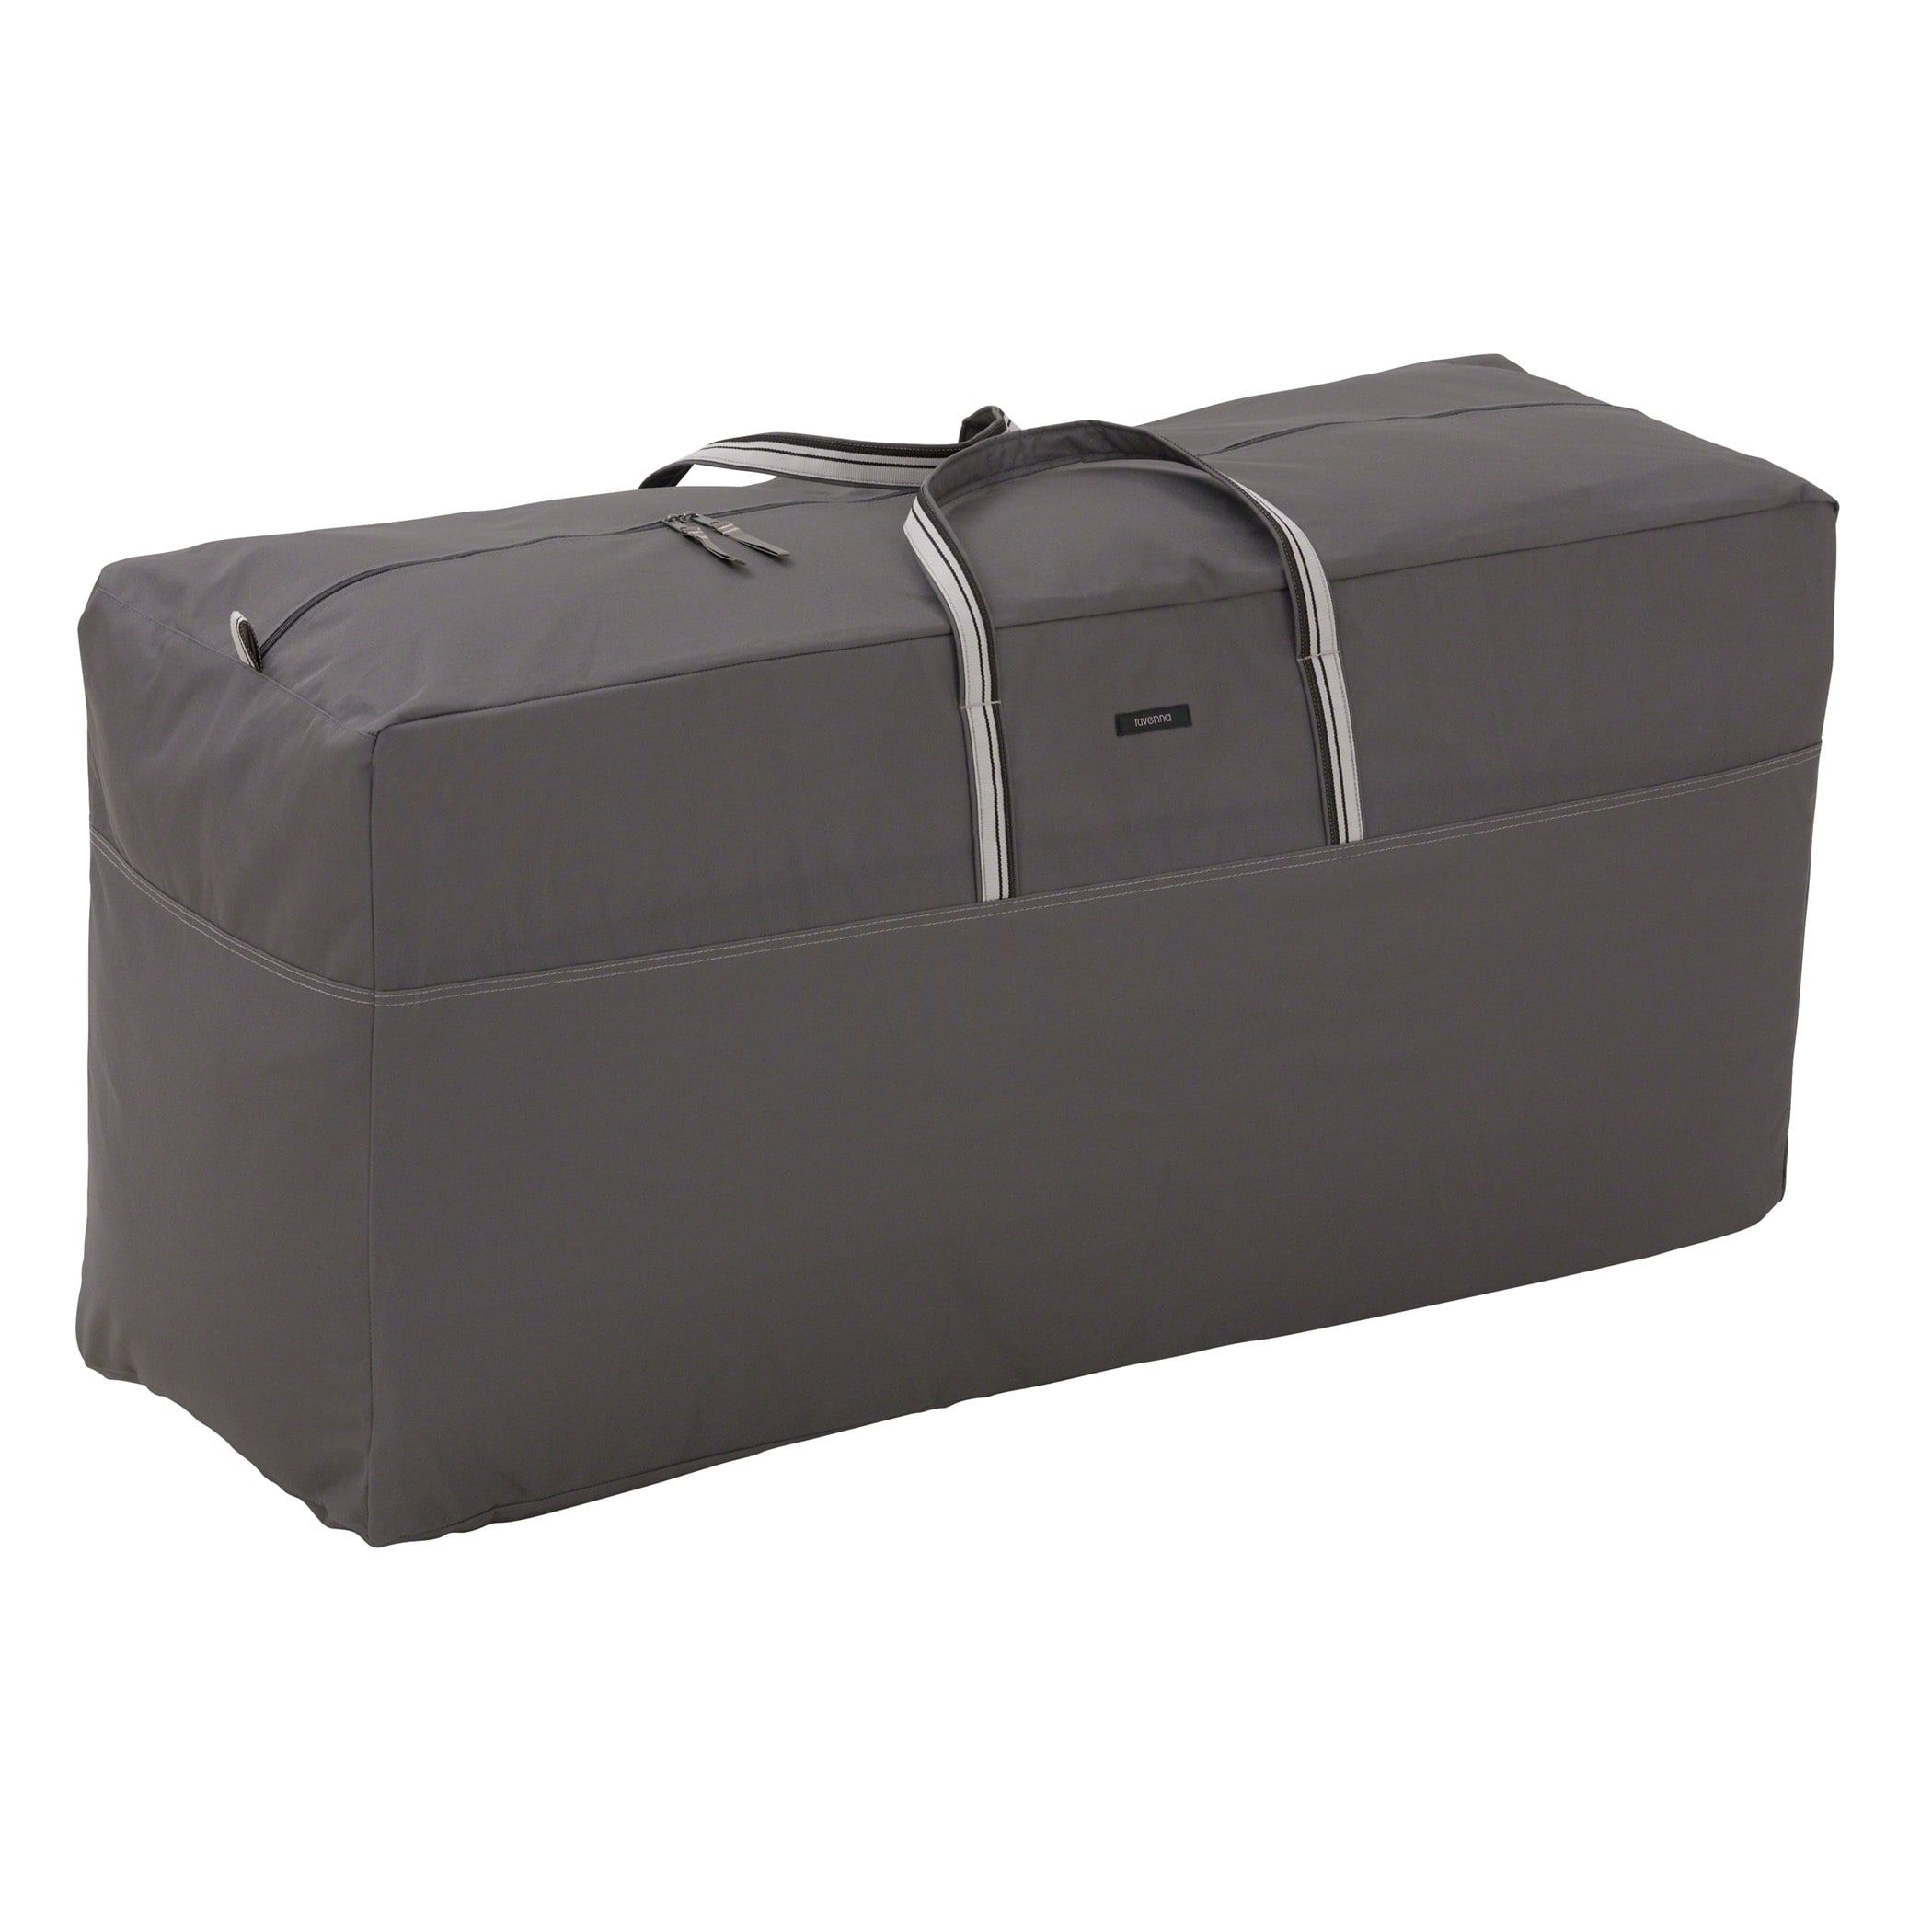 Classic Accessories Ravenna Oversized Cushion & Cover Storage Bag